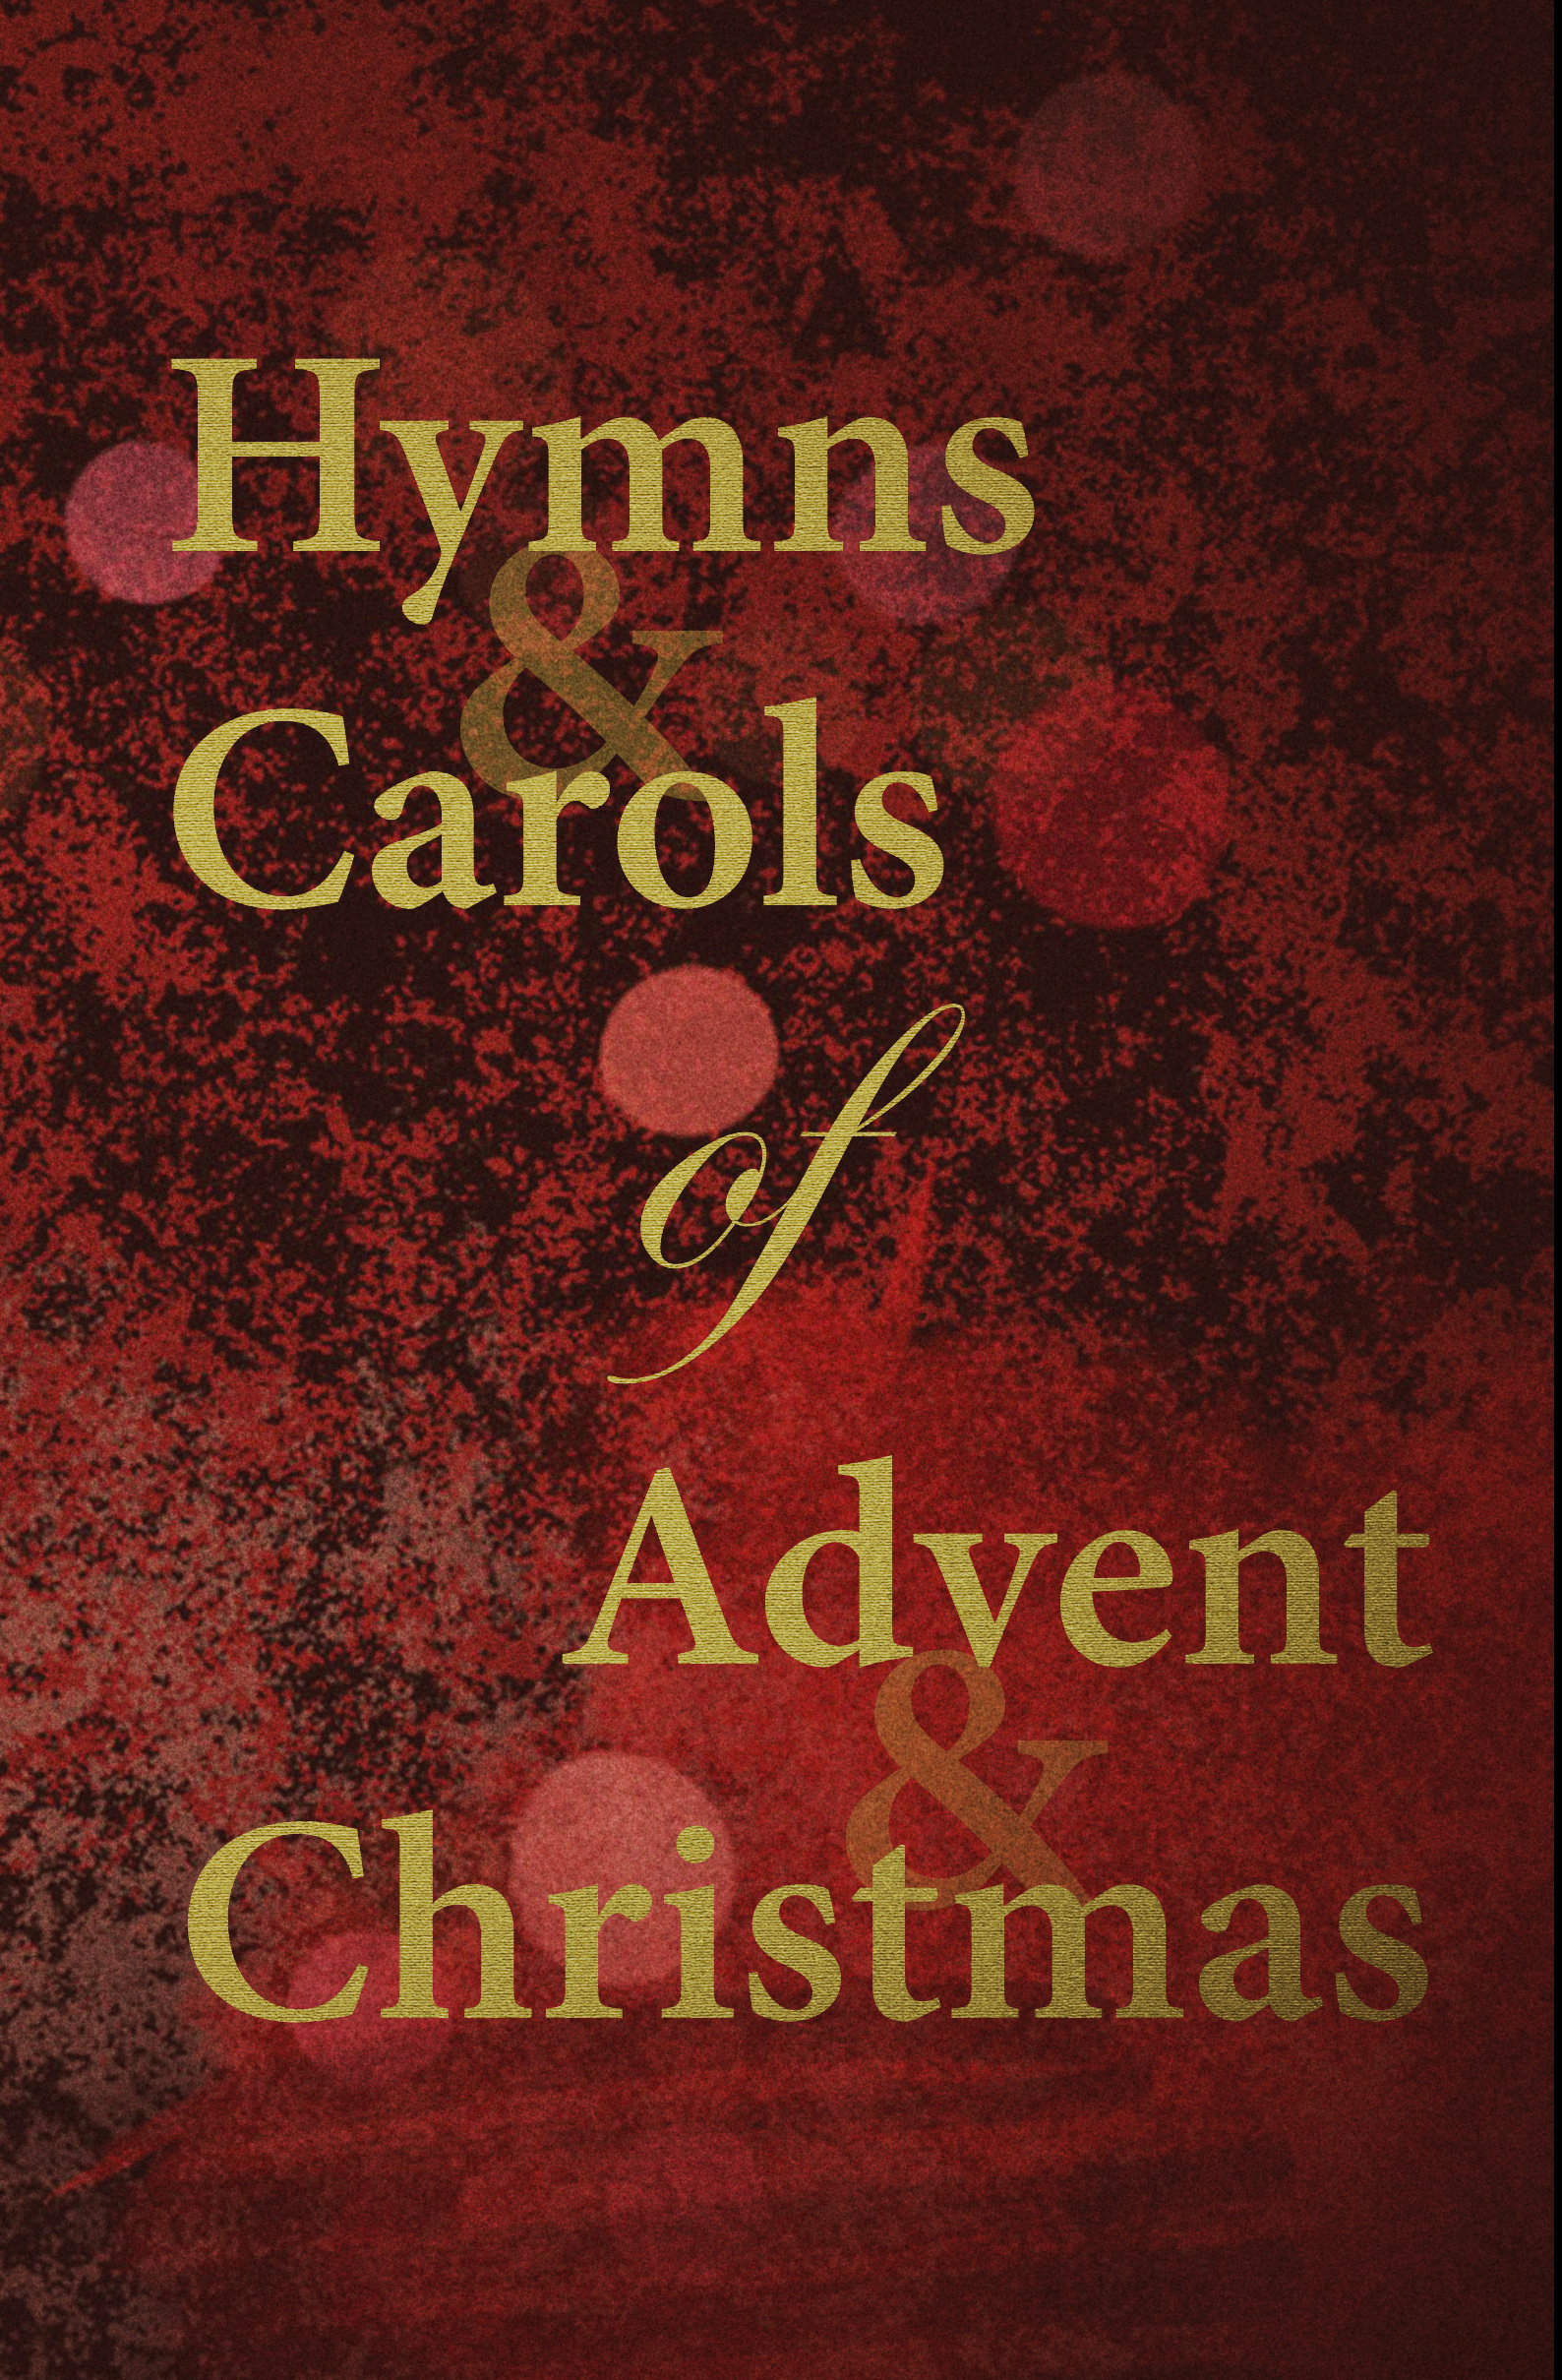 New Book: Hymns and Carols of Advent and Christmas